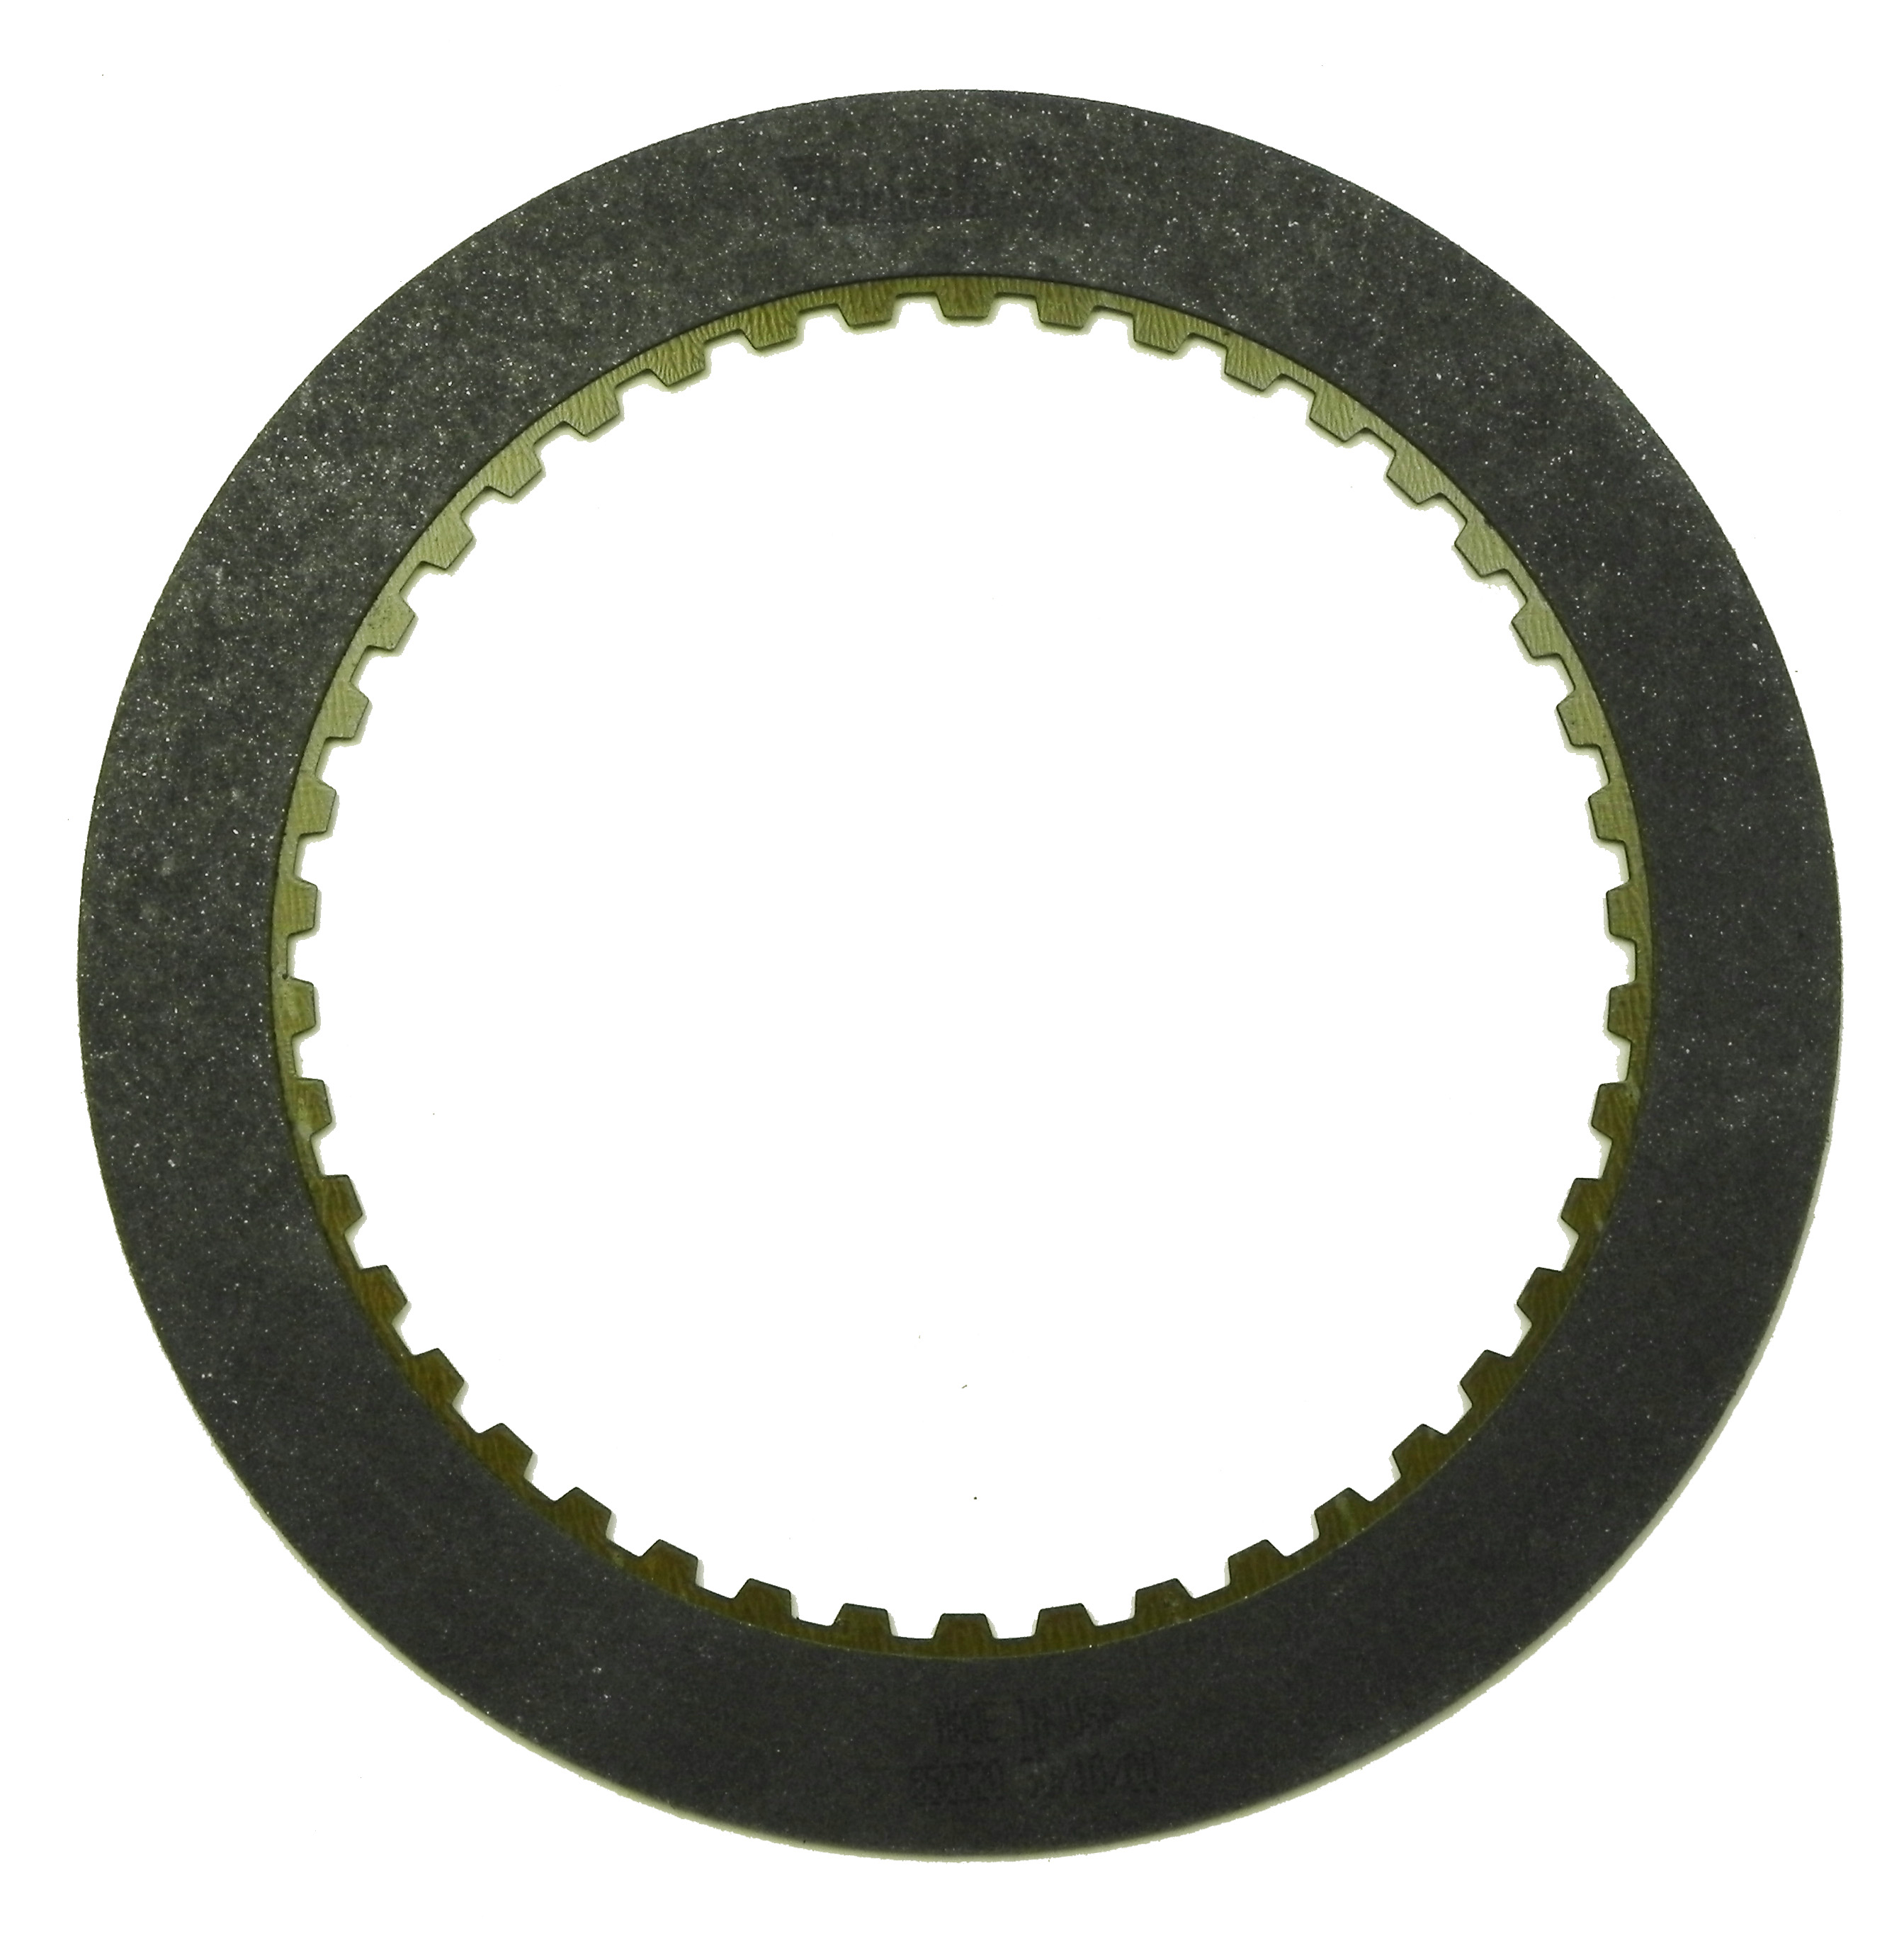 TH400, 3L80, TH400-R2, TH425, THMR2, 3L80HD, TH375, TH475, 4L80E, 4L85E High Energy Friction Clutch Plate